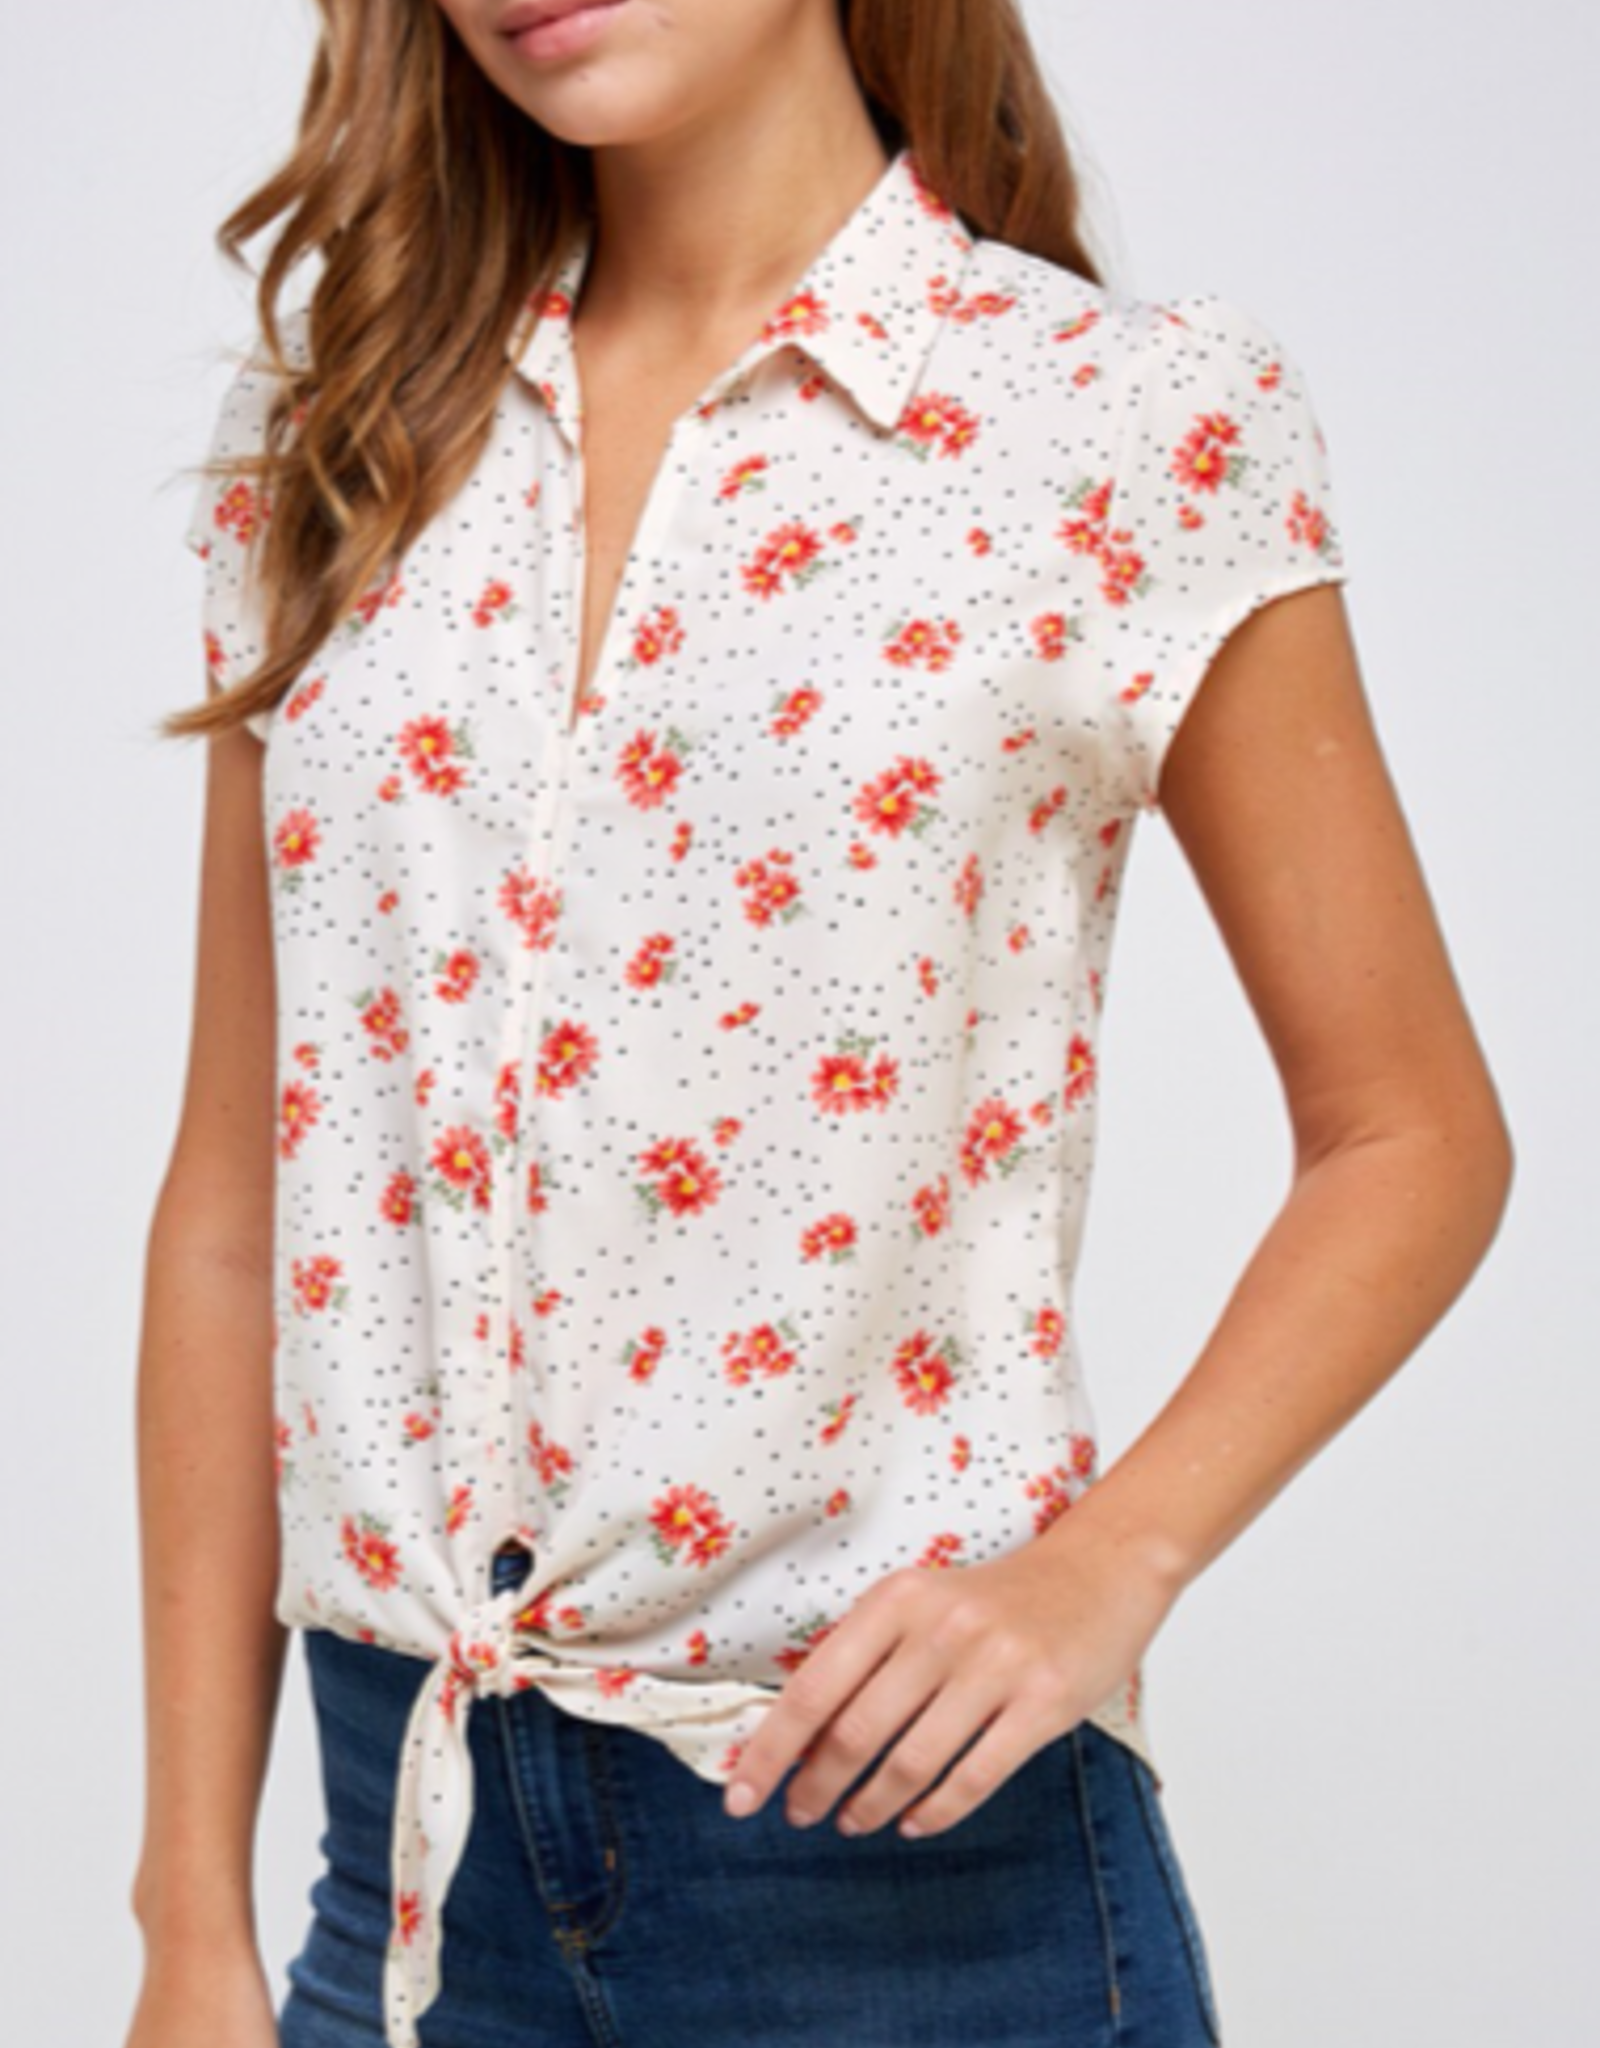 Westmoon floral blouse with tie in front